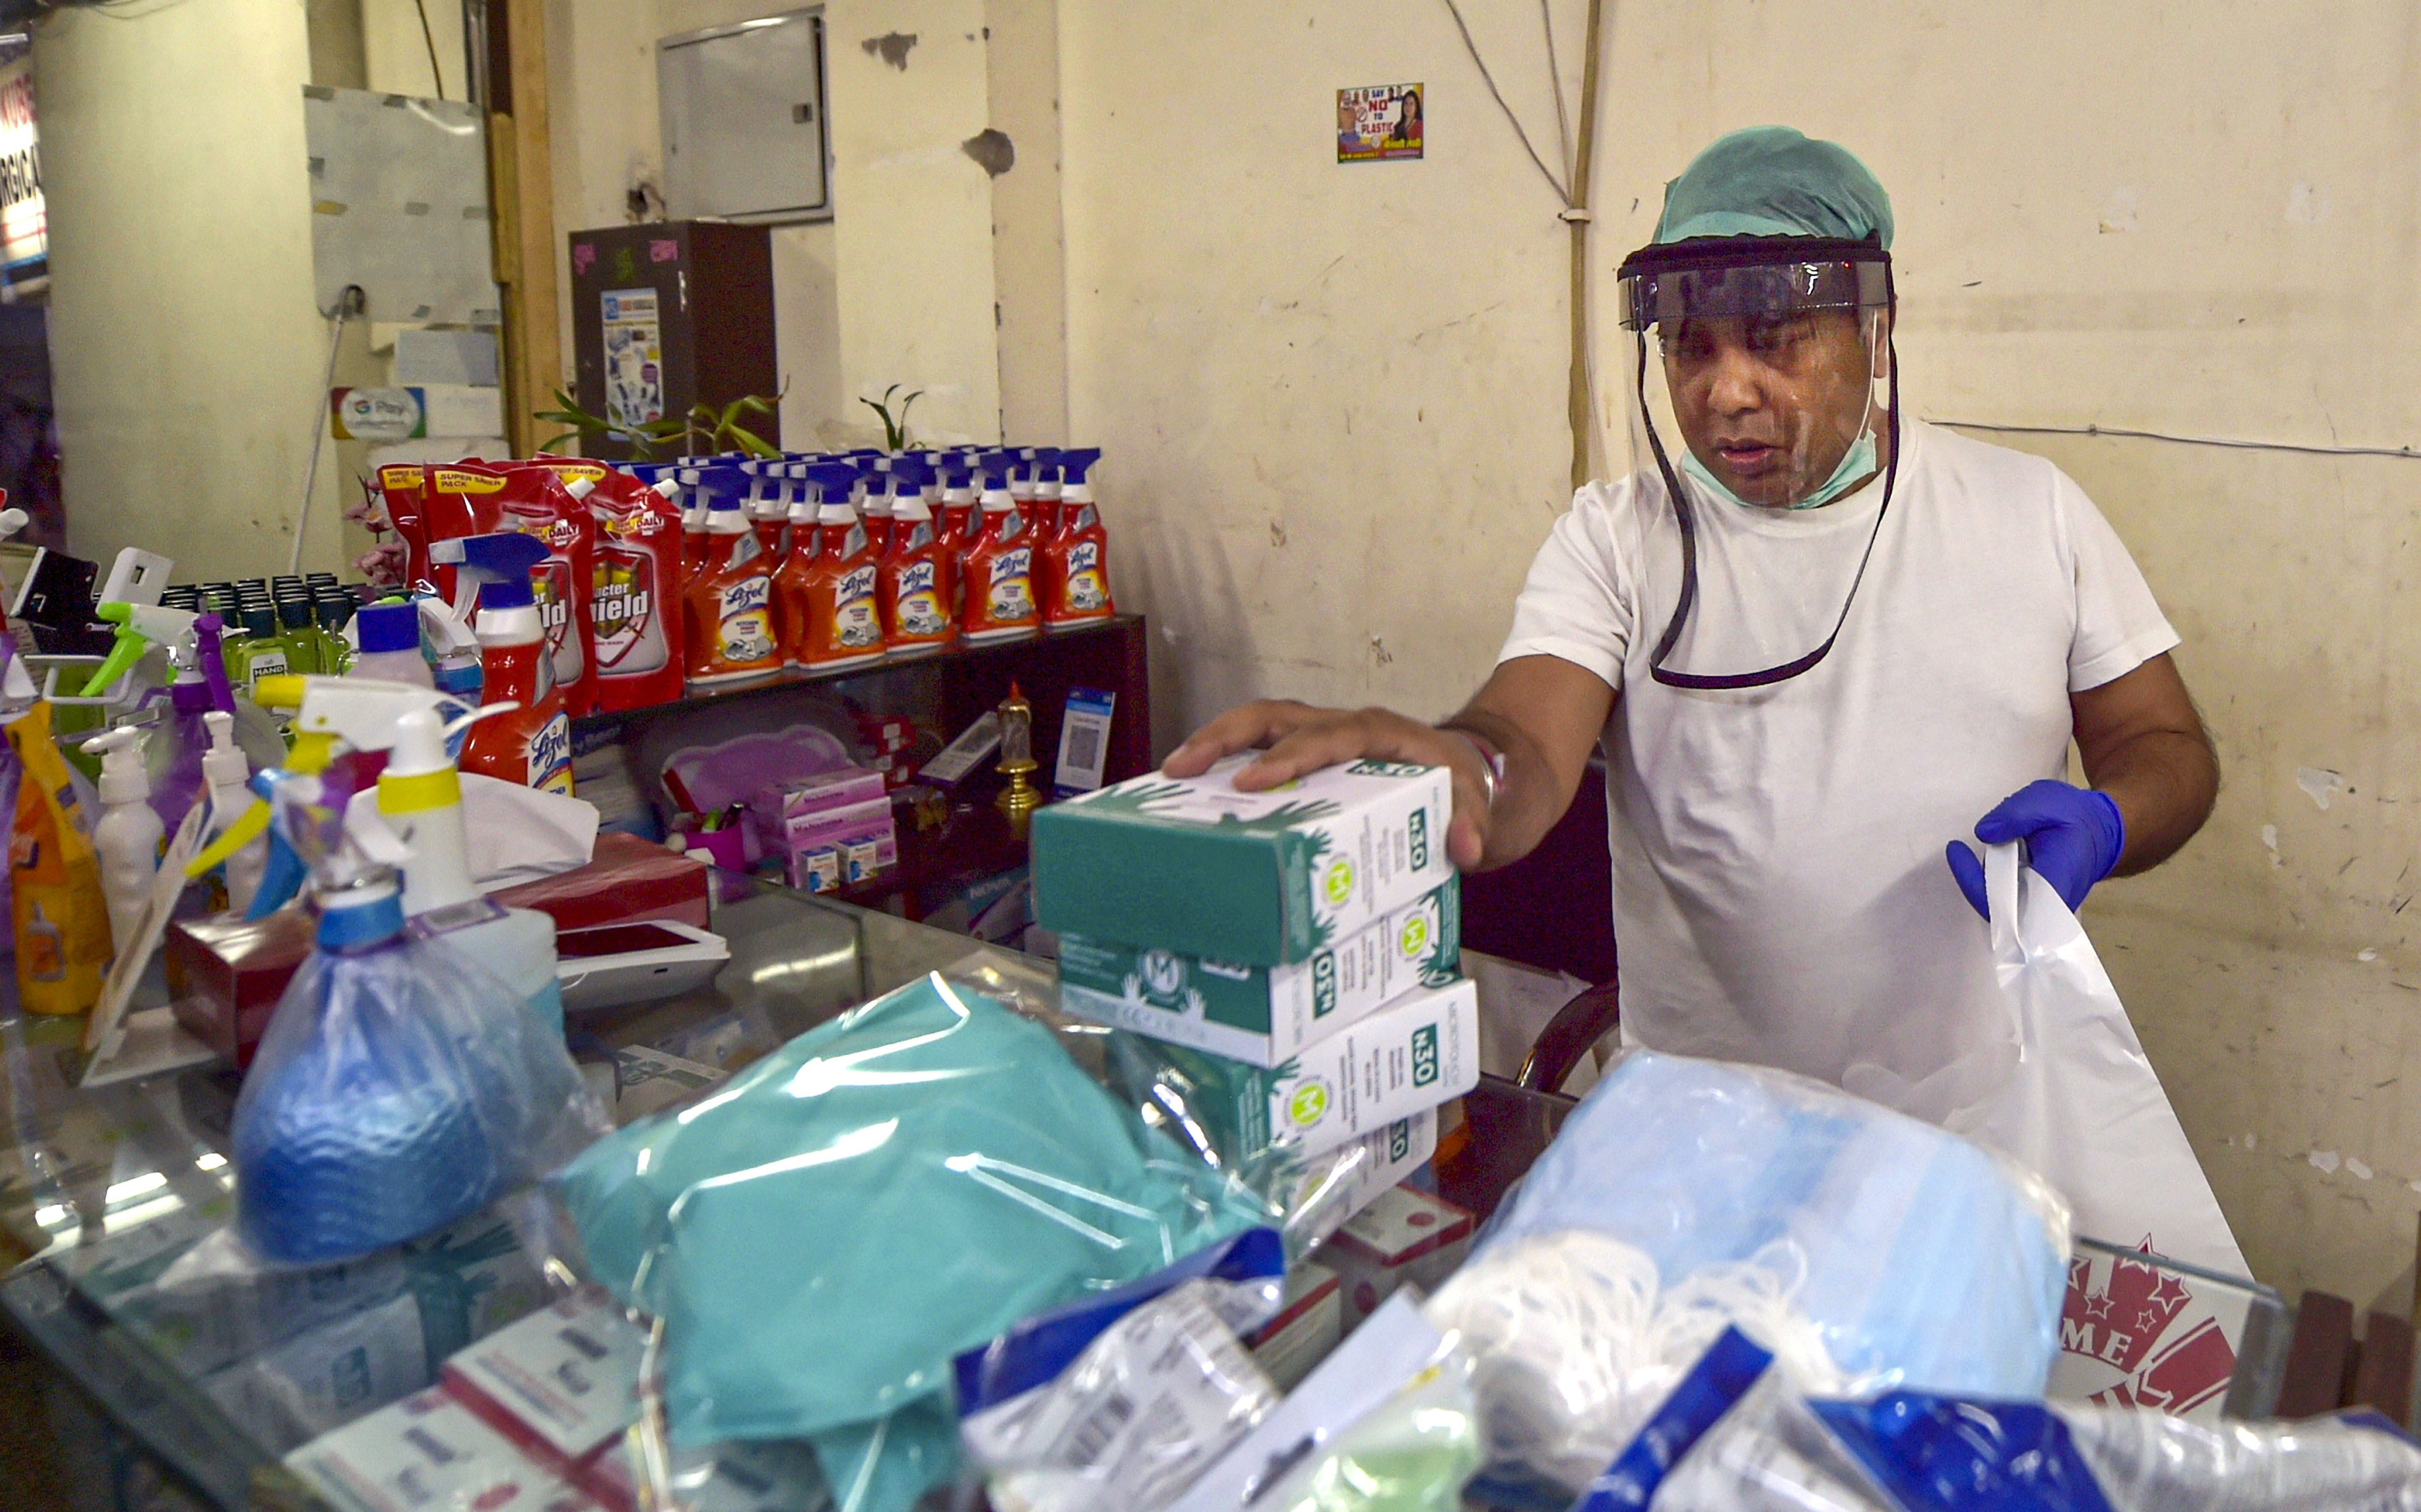 A Surgicals shop owner wears a protective face shield in wake of the coronavirus pandemic, during the nationwide lockdown, in New Delhi